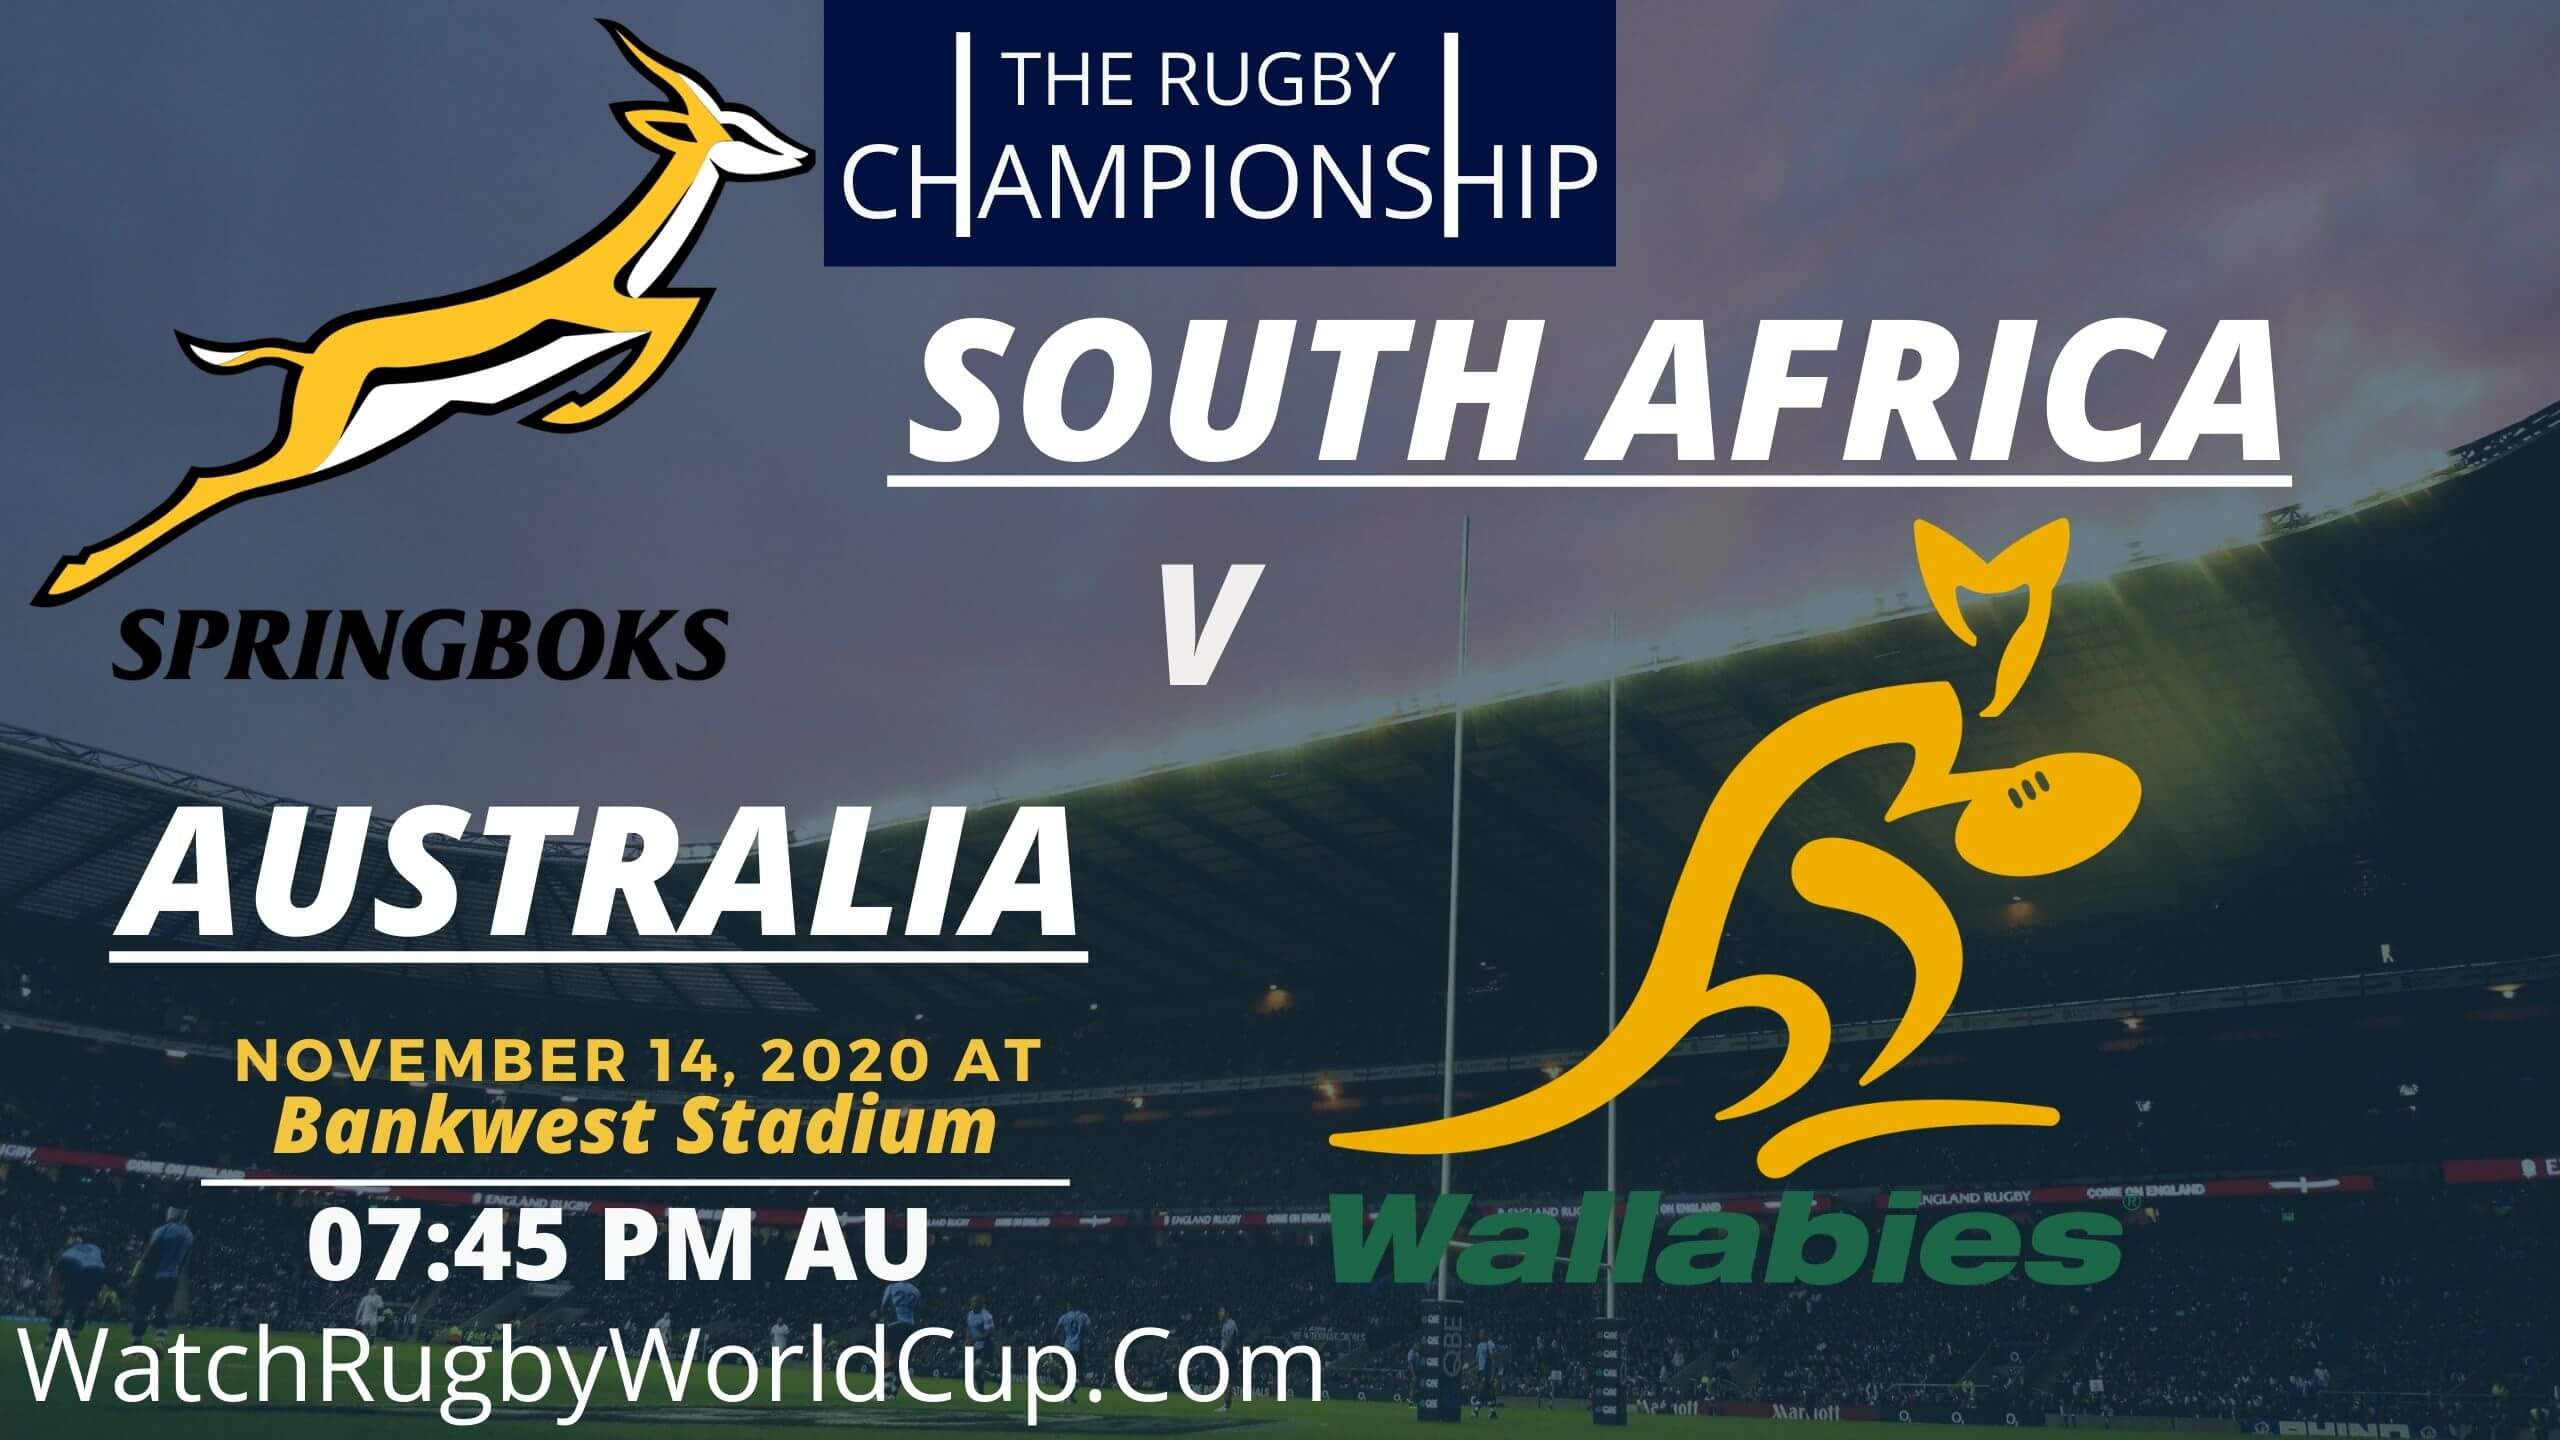 South Africa VS Australia Rugby Championship Live Stream